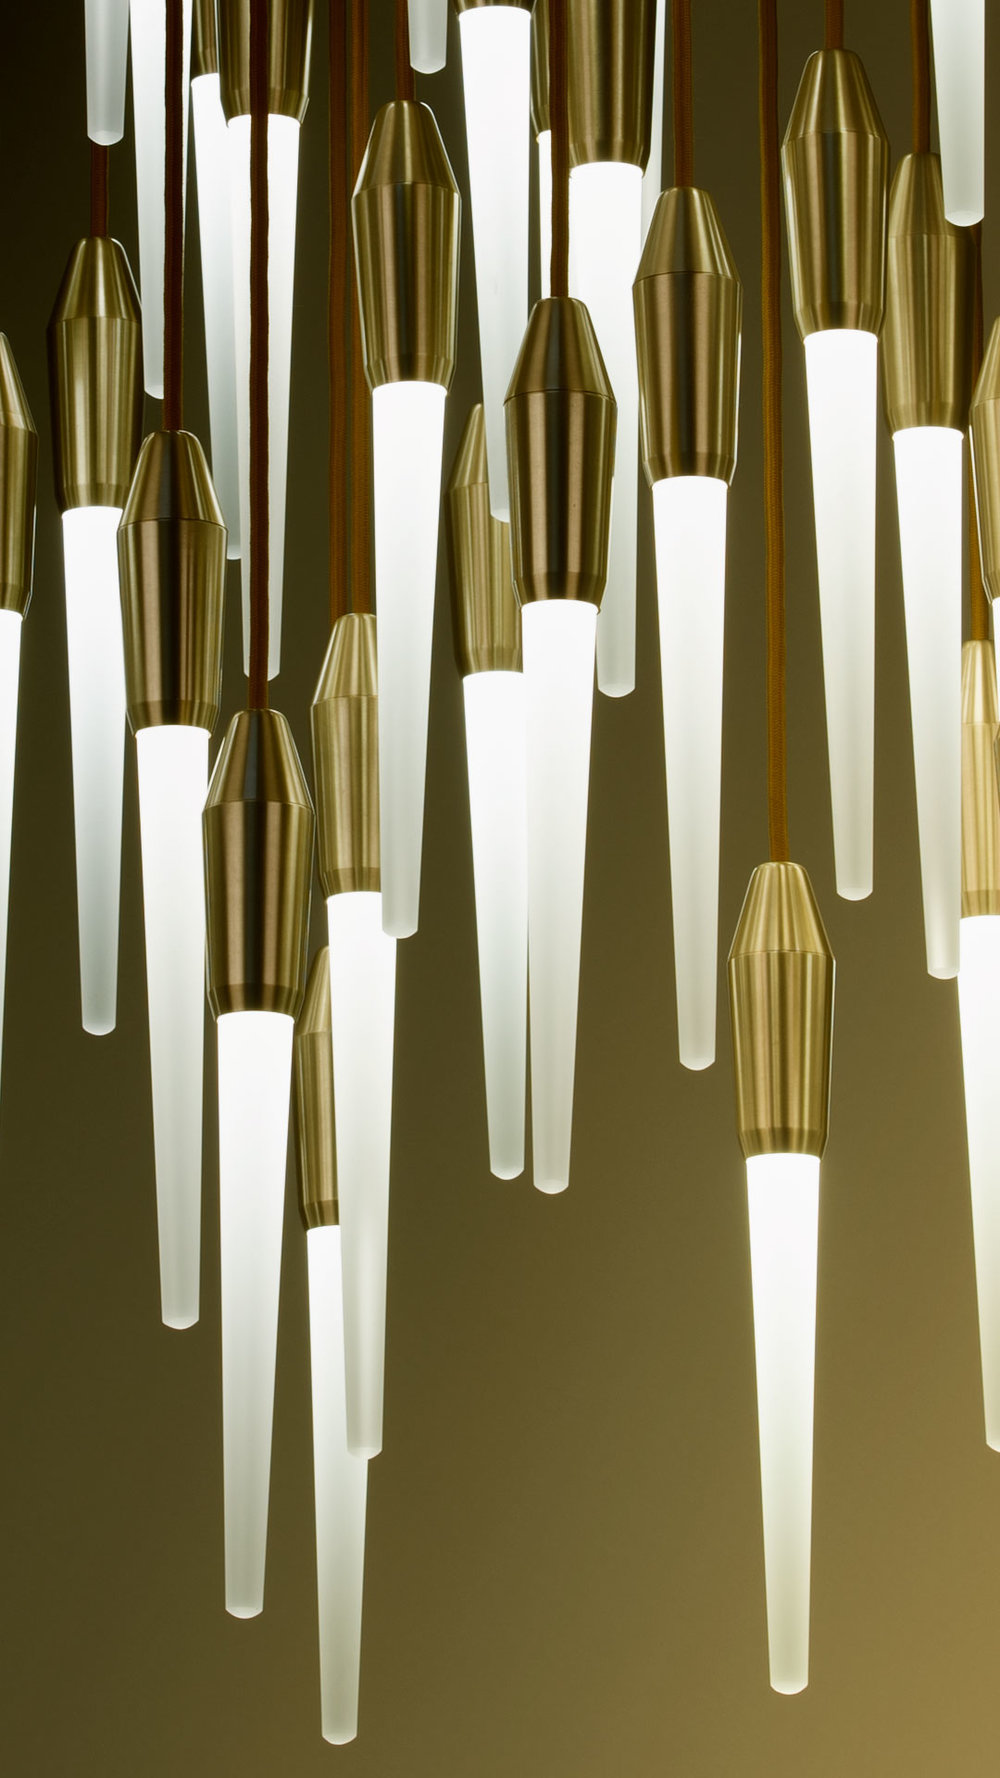 Icicle LED Series - Ceiling Fixtures and SconcesClear or Etched Glass IciclesMultiple Cord Colors and Finish Options